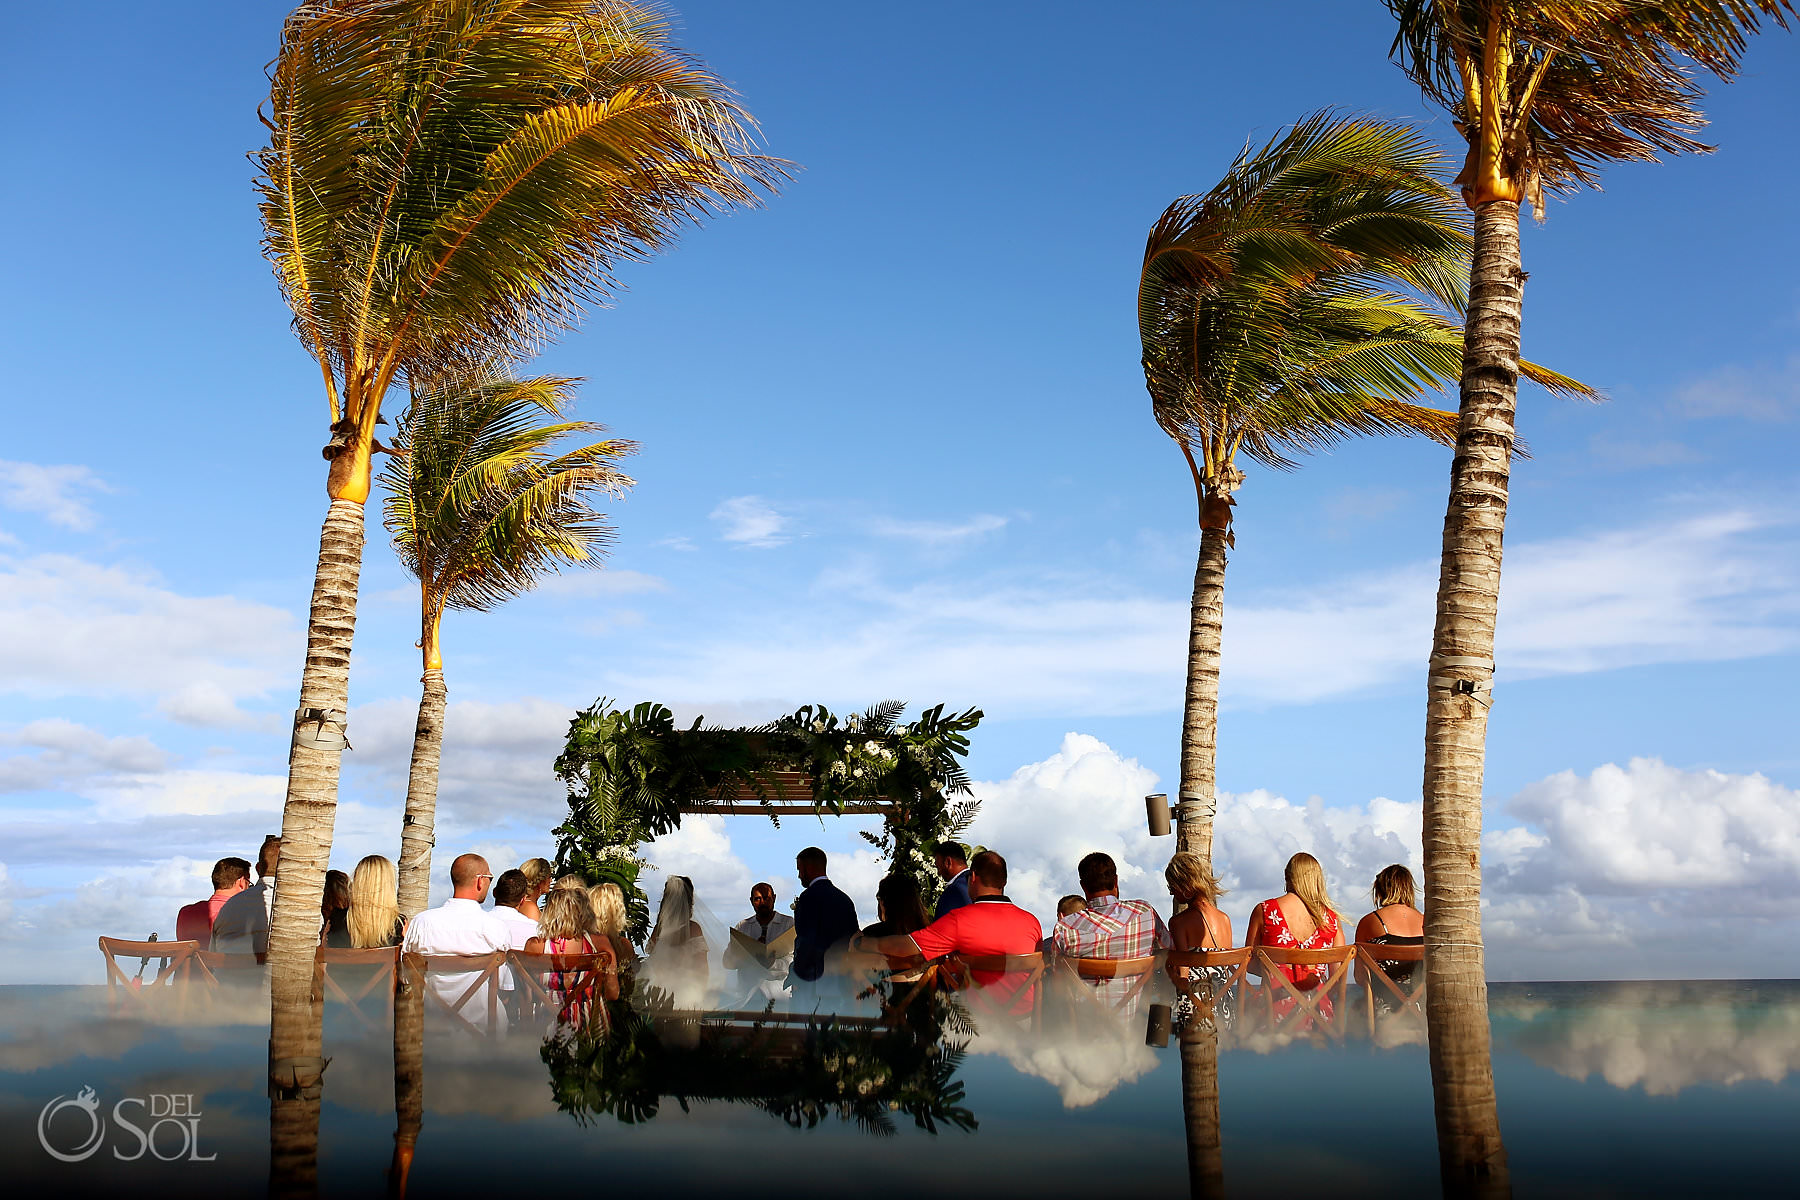 Best riviera Maya Wedding venue Hotel Xcaret Mexico Playa del Carmen